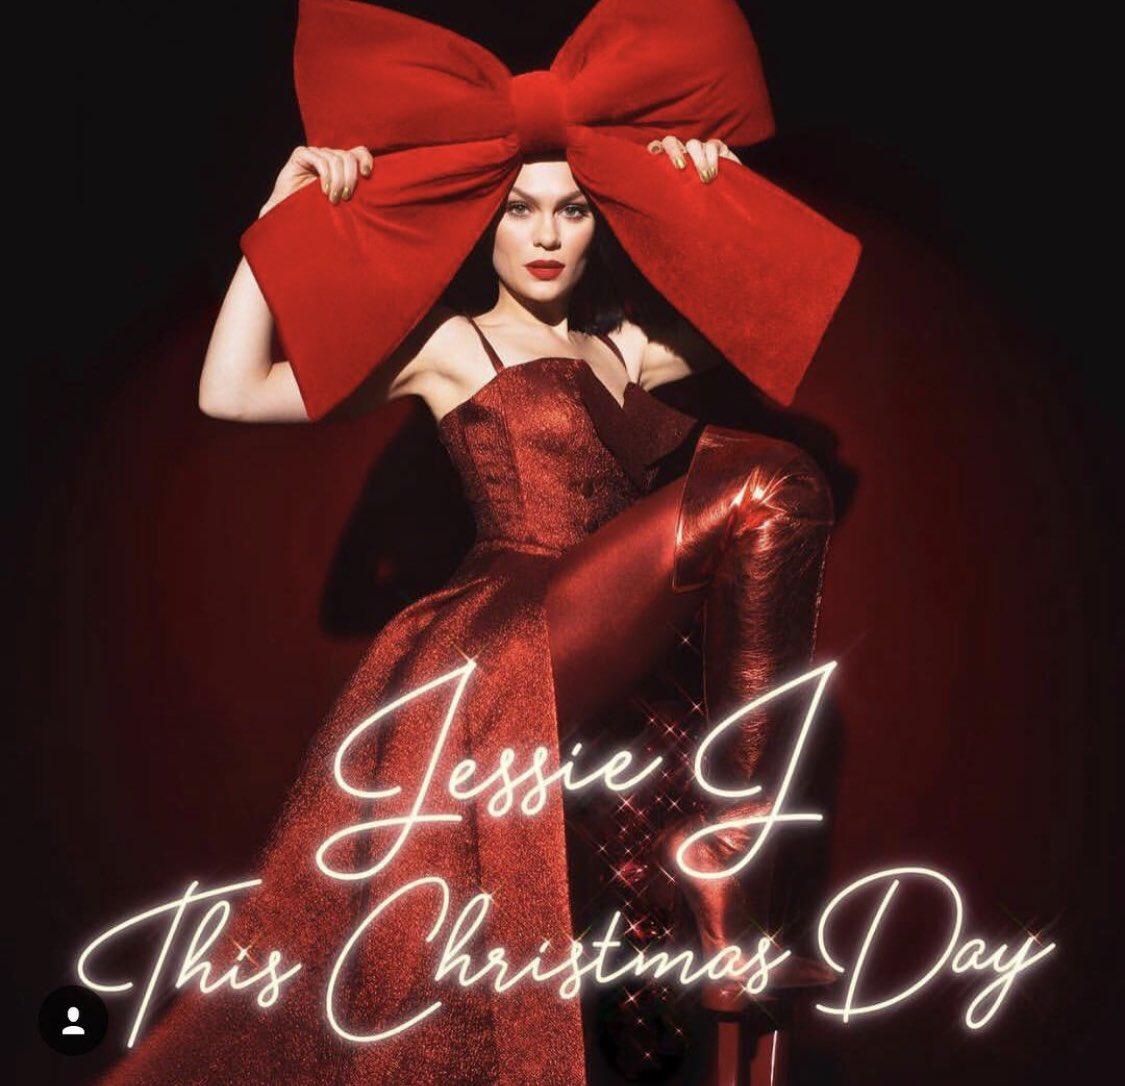 My album 'This Christmas Day' is available now on my website  http://www. jessiejofficial.com  &nbsp;   and on all streaming platforms <br>http://pic.twitter.com/6h3ePqbIIc